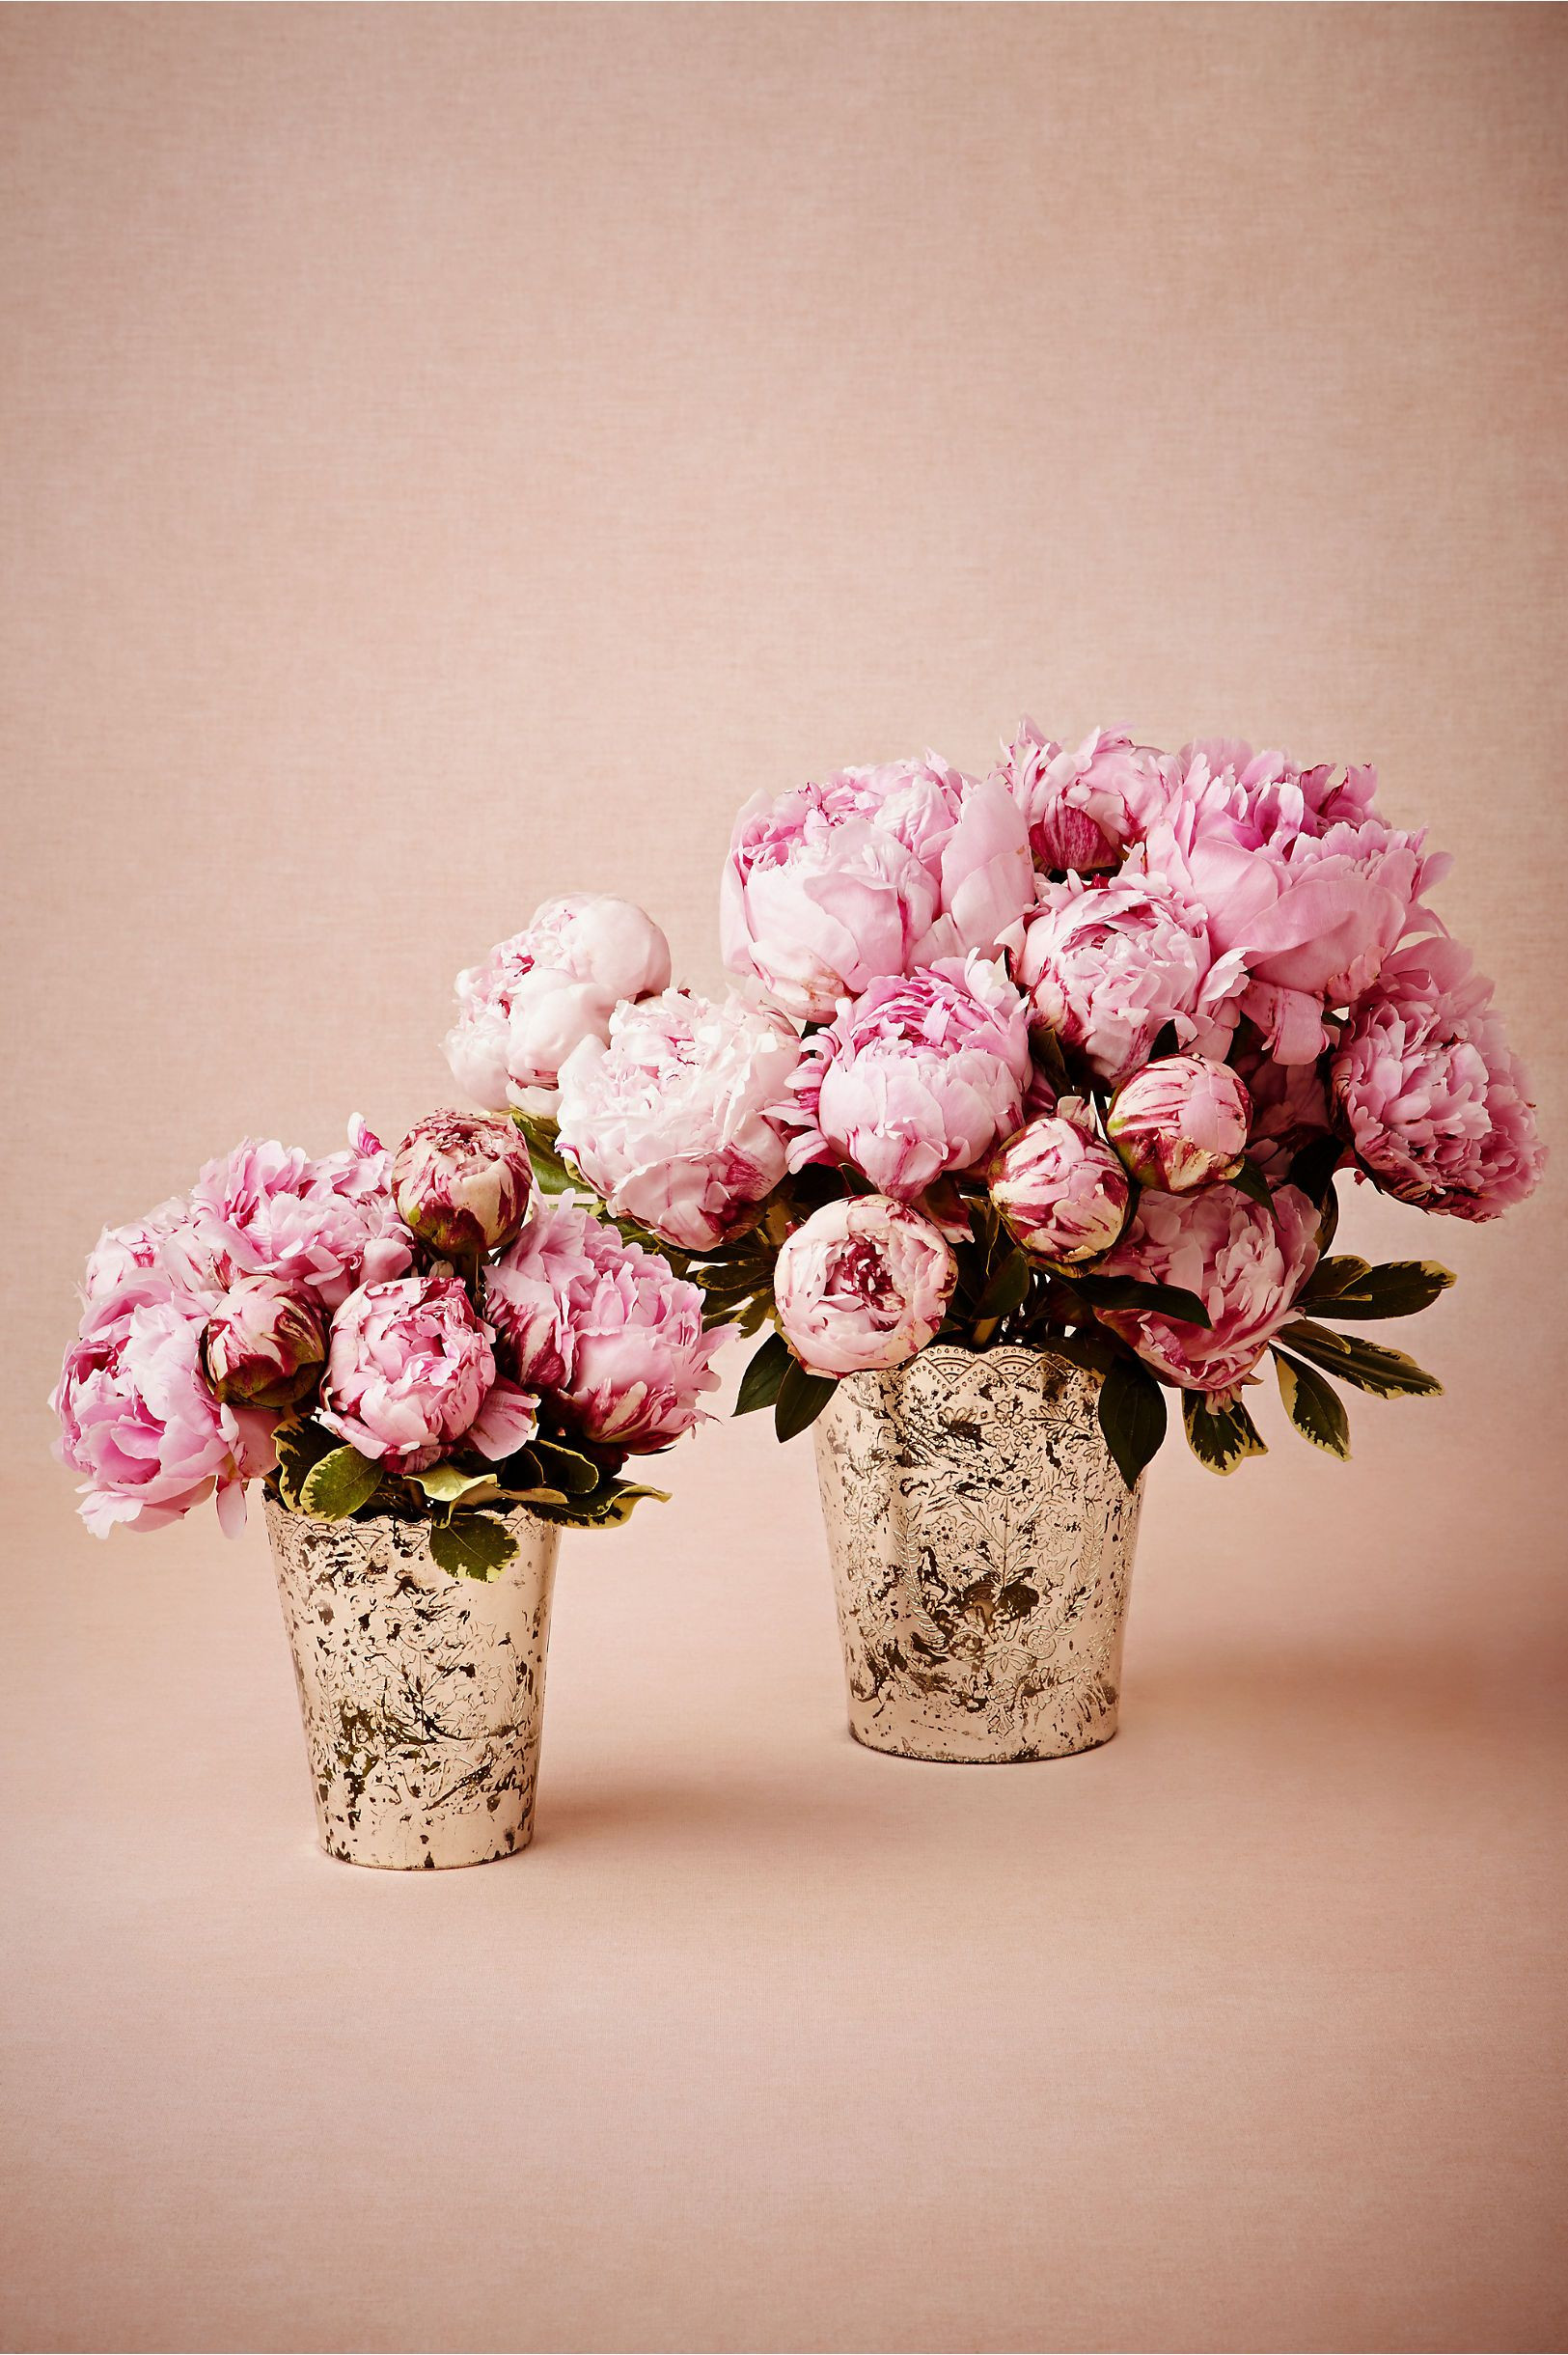 blush pink vase of tracing botany vase in dacor centerpieces at bhldn wedding regarding bright a pink peonies in mercury vases tracing botany vase from bhldn